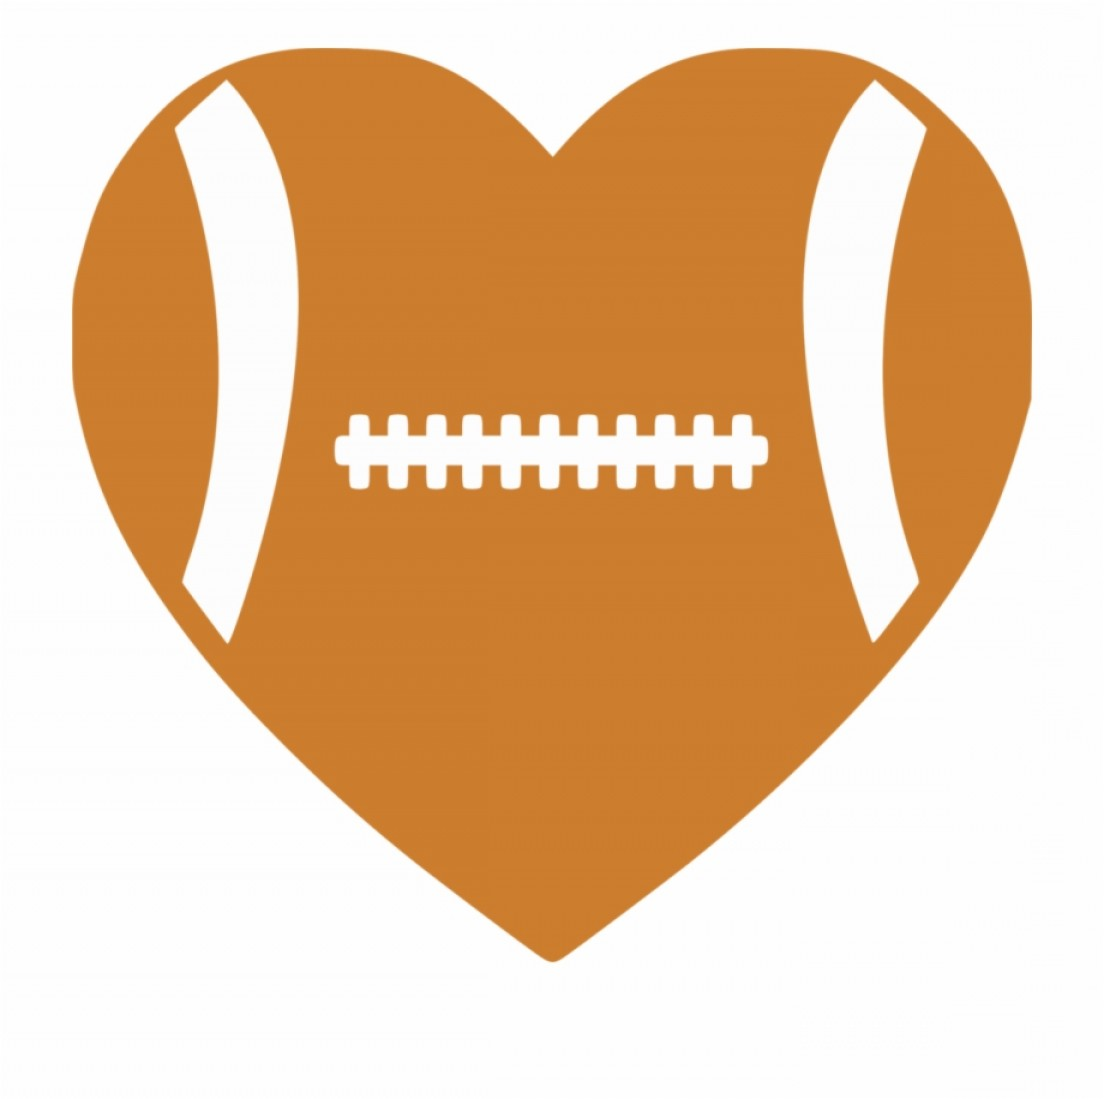 Football Heart Clipart Black And White